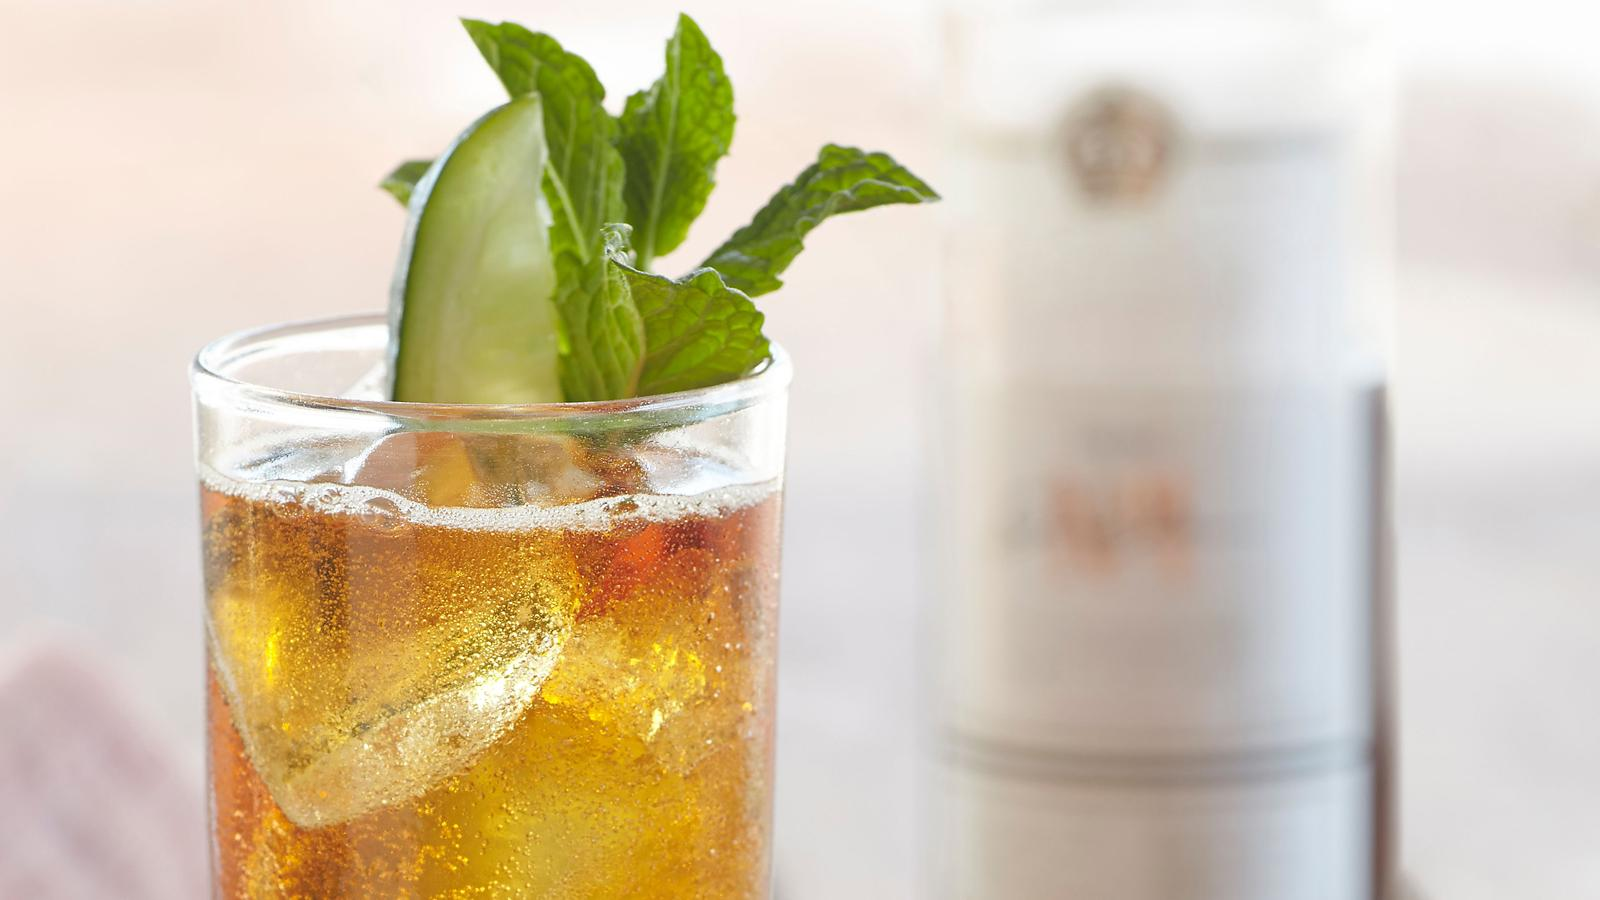 Pimm's Cup—An English Take On Summer